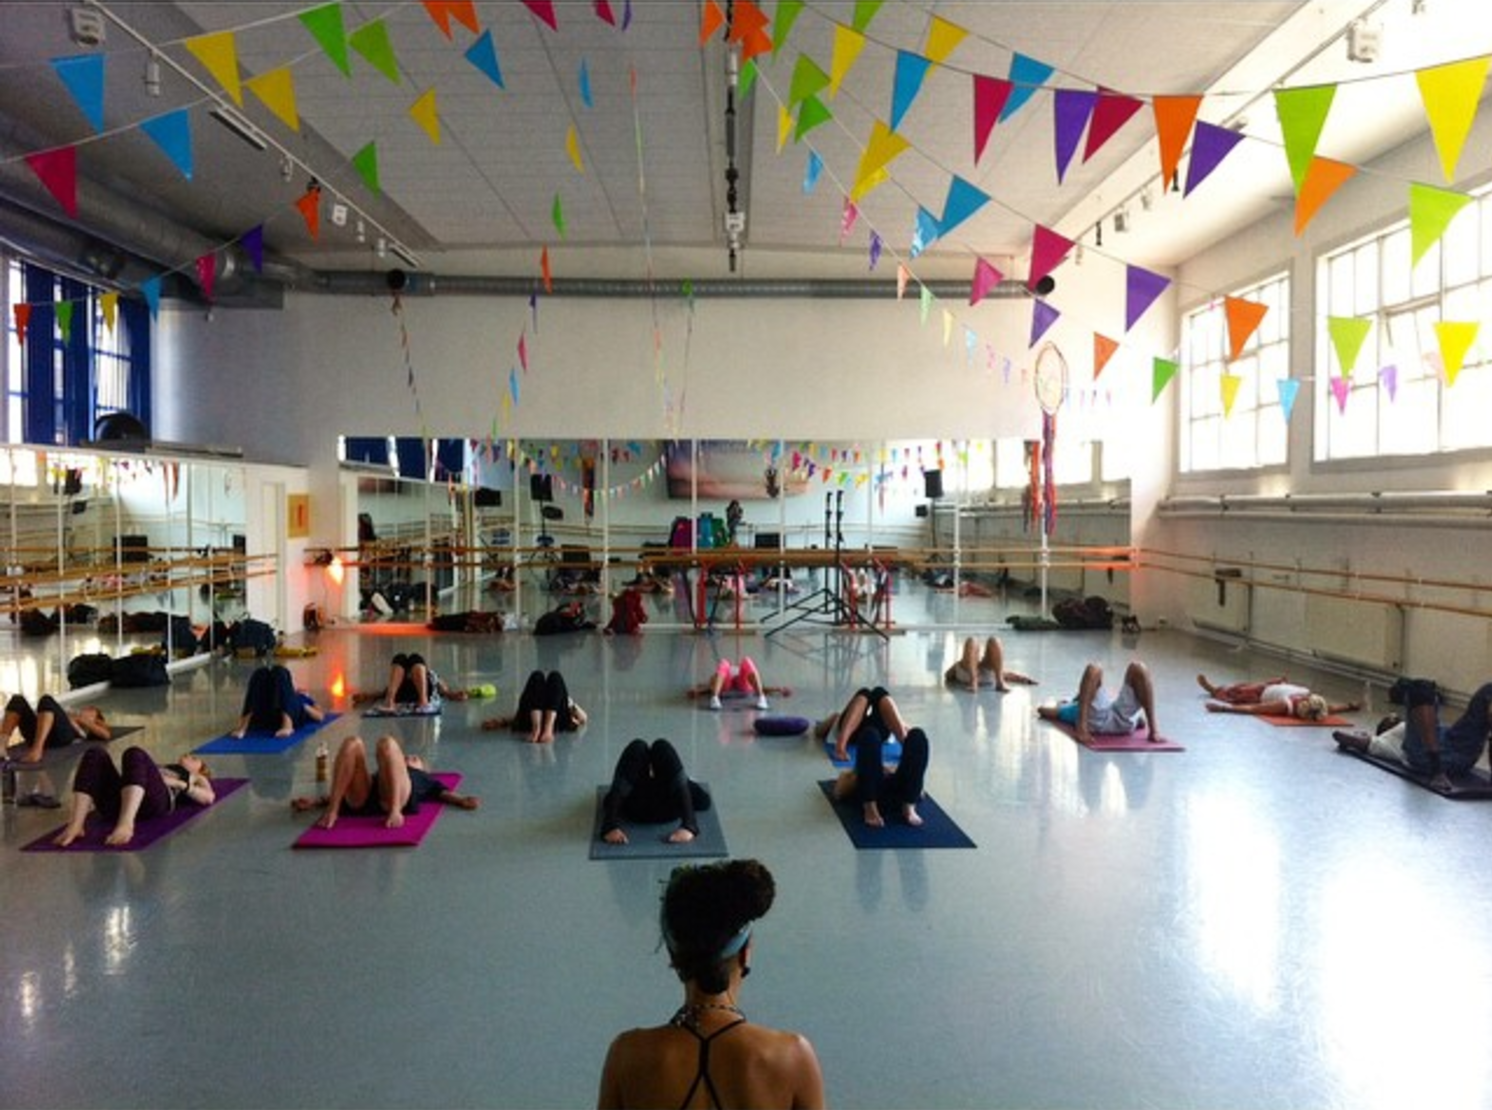 Yoga Festivals - Om Yoga Festival in Manchester and London (UK) + Movement Arts Festival in Oslo (Norway)